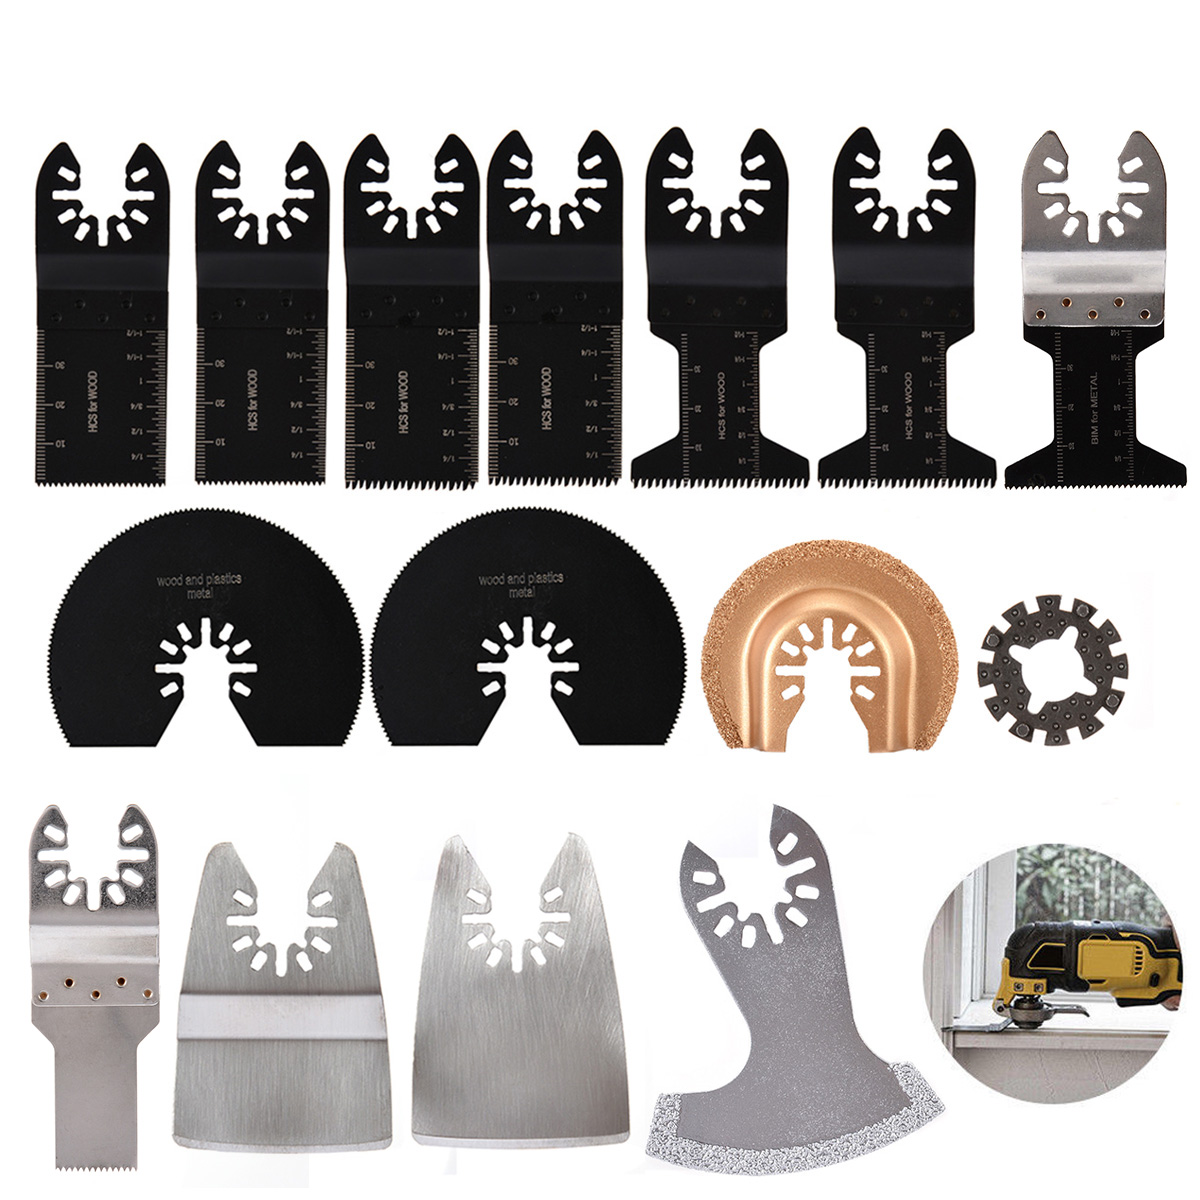 15pcs Oscillating Multi Tool Saw Blades Universal Cutting Blade Assortment Kit For Wood Plastic Metal Cutting цена